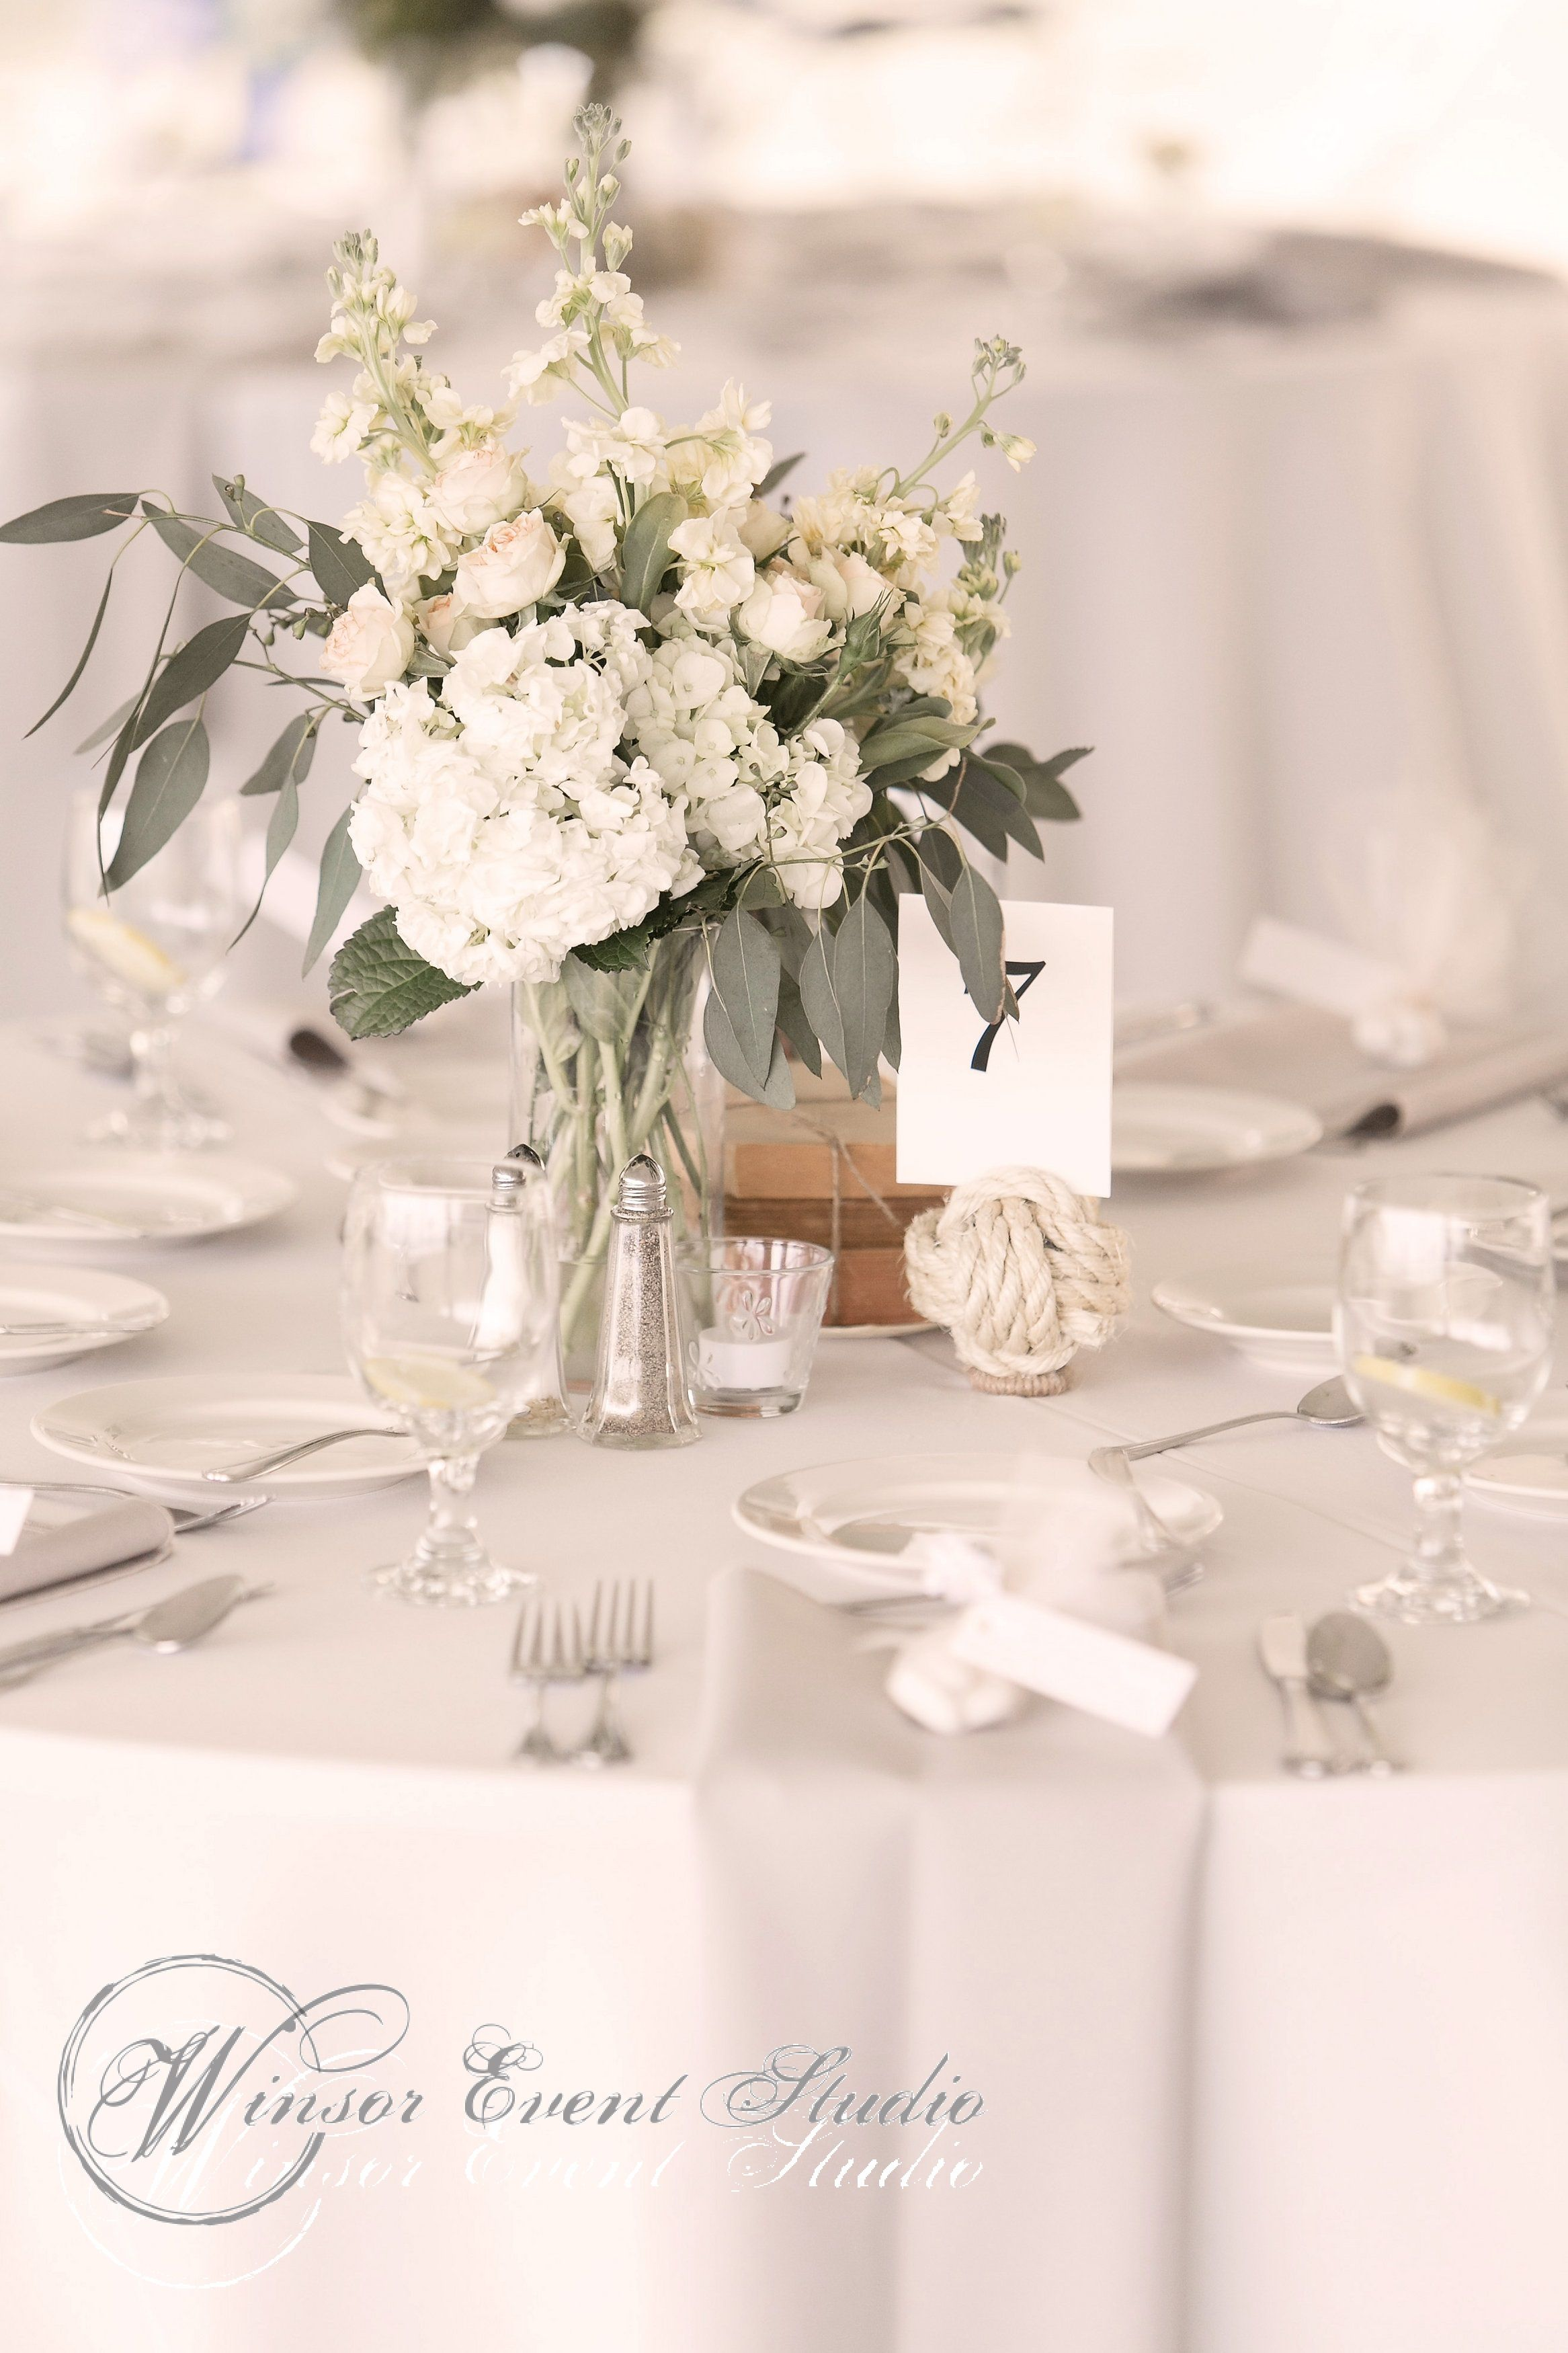 Centerpieces Of Hydrangea Seeded Eucalyptus Spray Roses And Creamy Stock In Vases Paired With